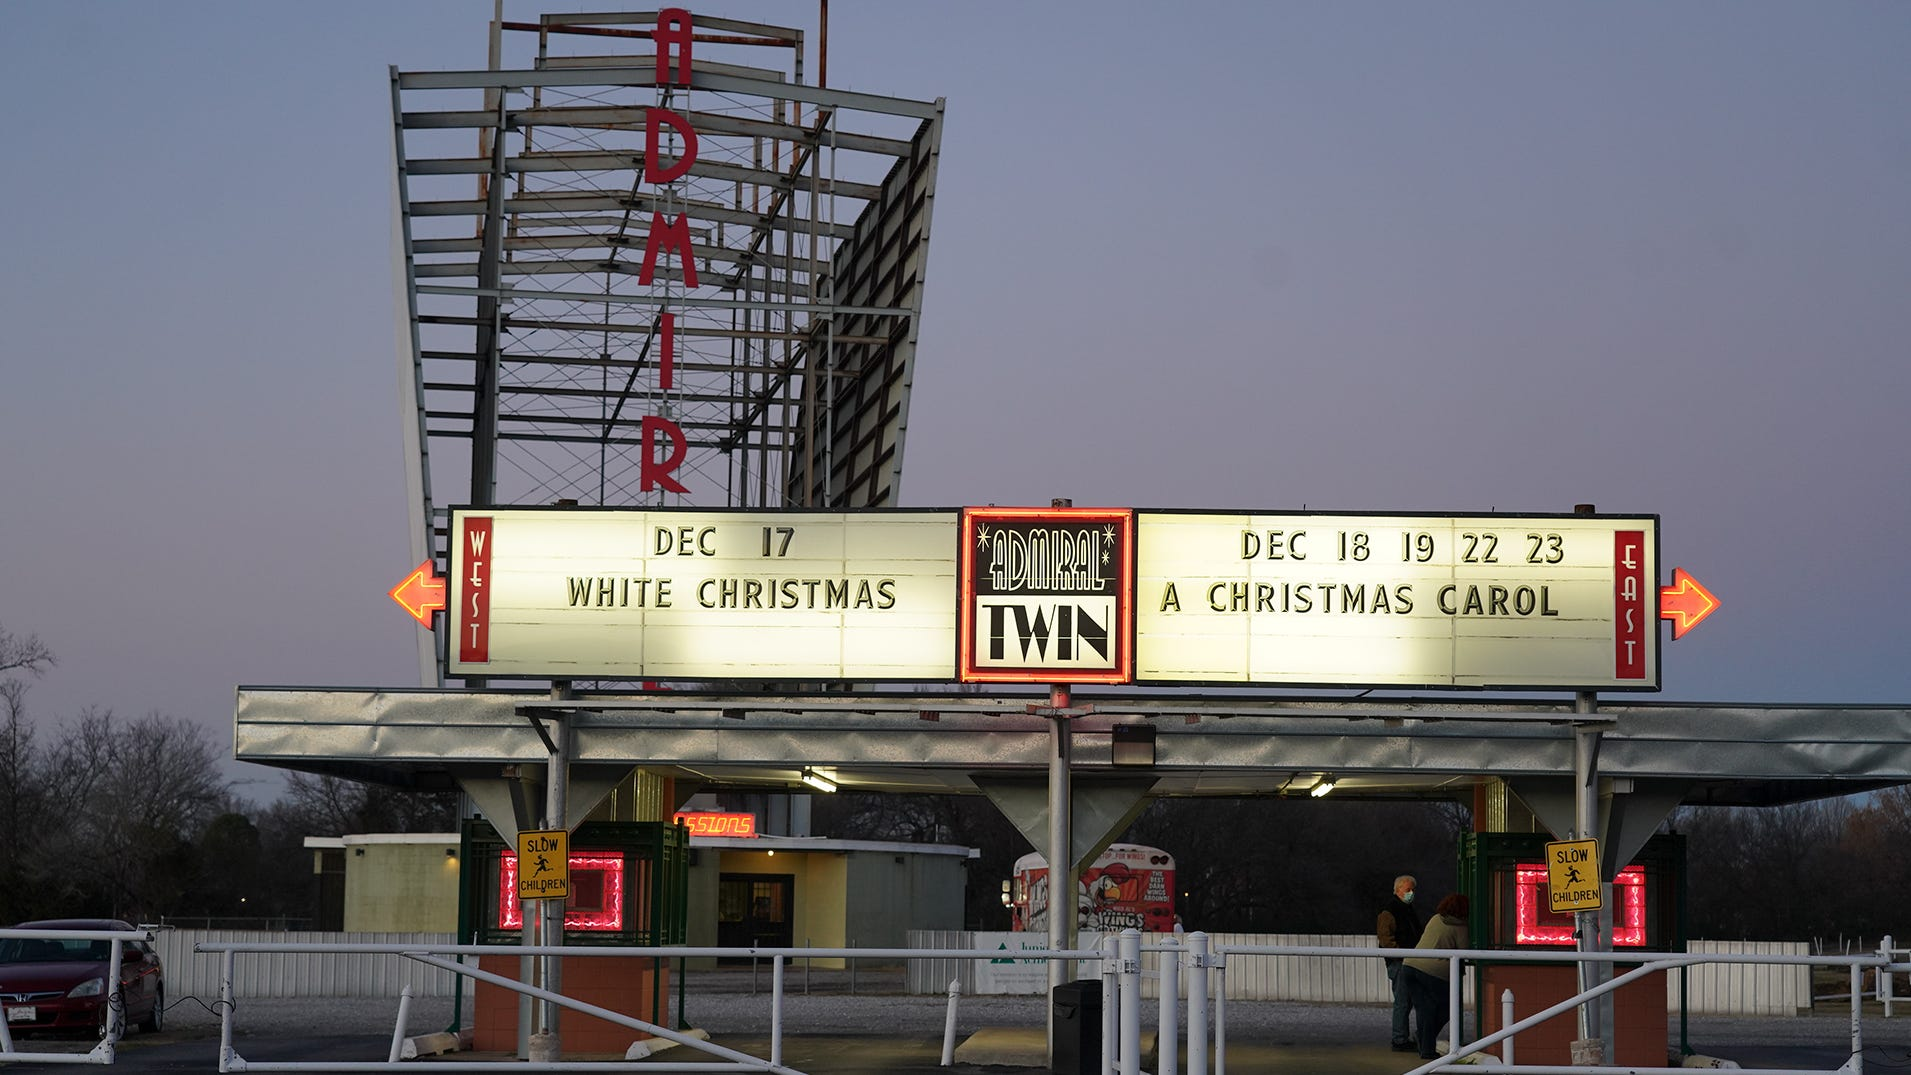 Tulsa Christmas 2021 Small Movie Theater In Tulsa Ok Gains An Audience During Pandemic